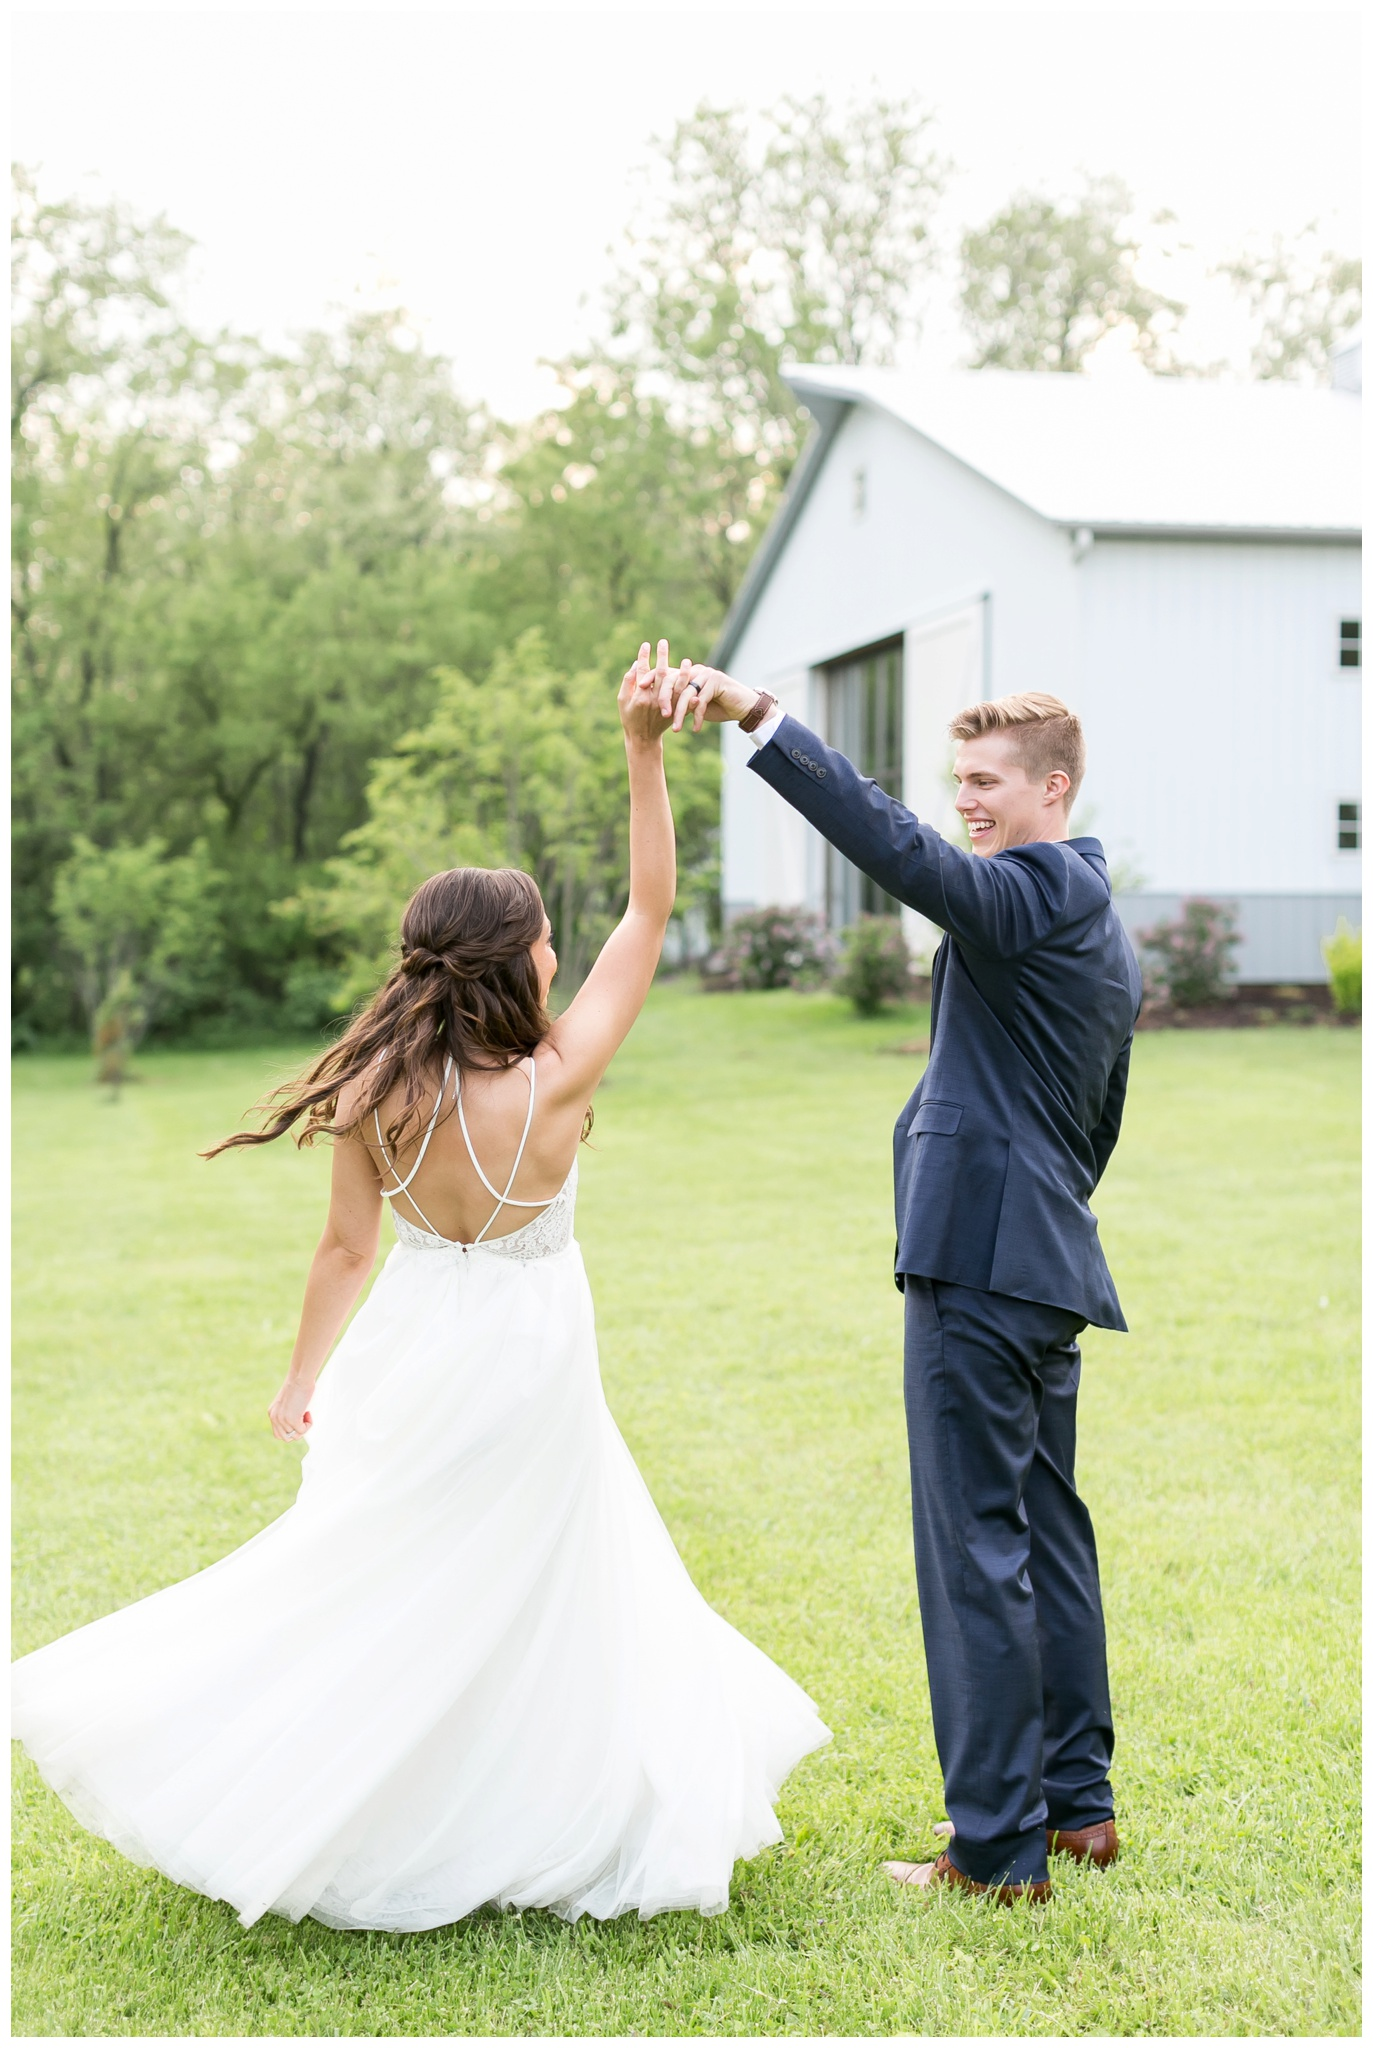 boxed_and_burlap_wedding_caynay_photo_delavan_wisconsin_photographer_3774.jpg